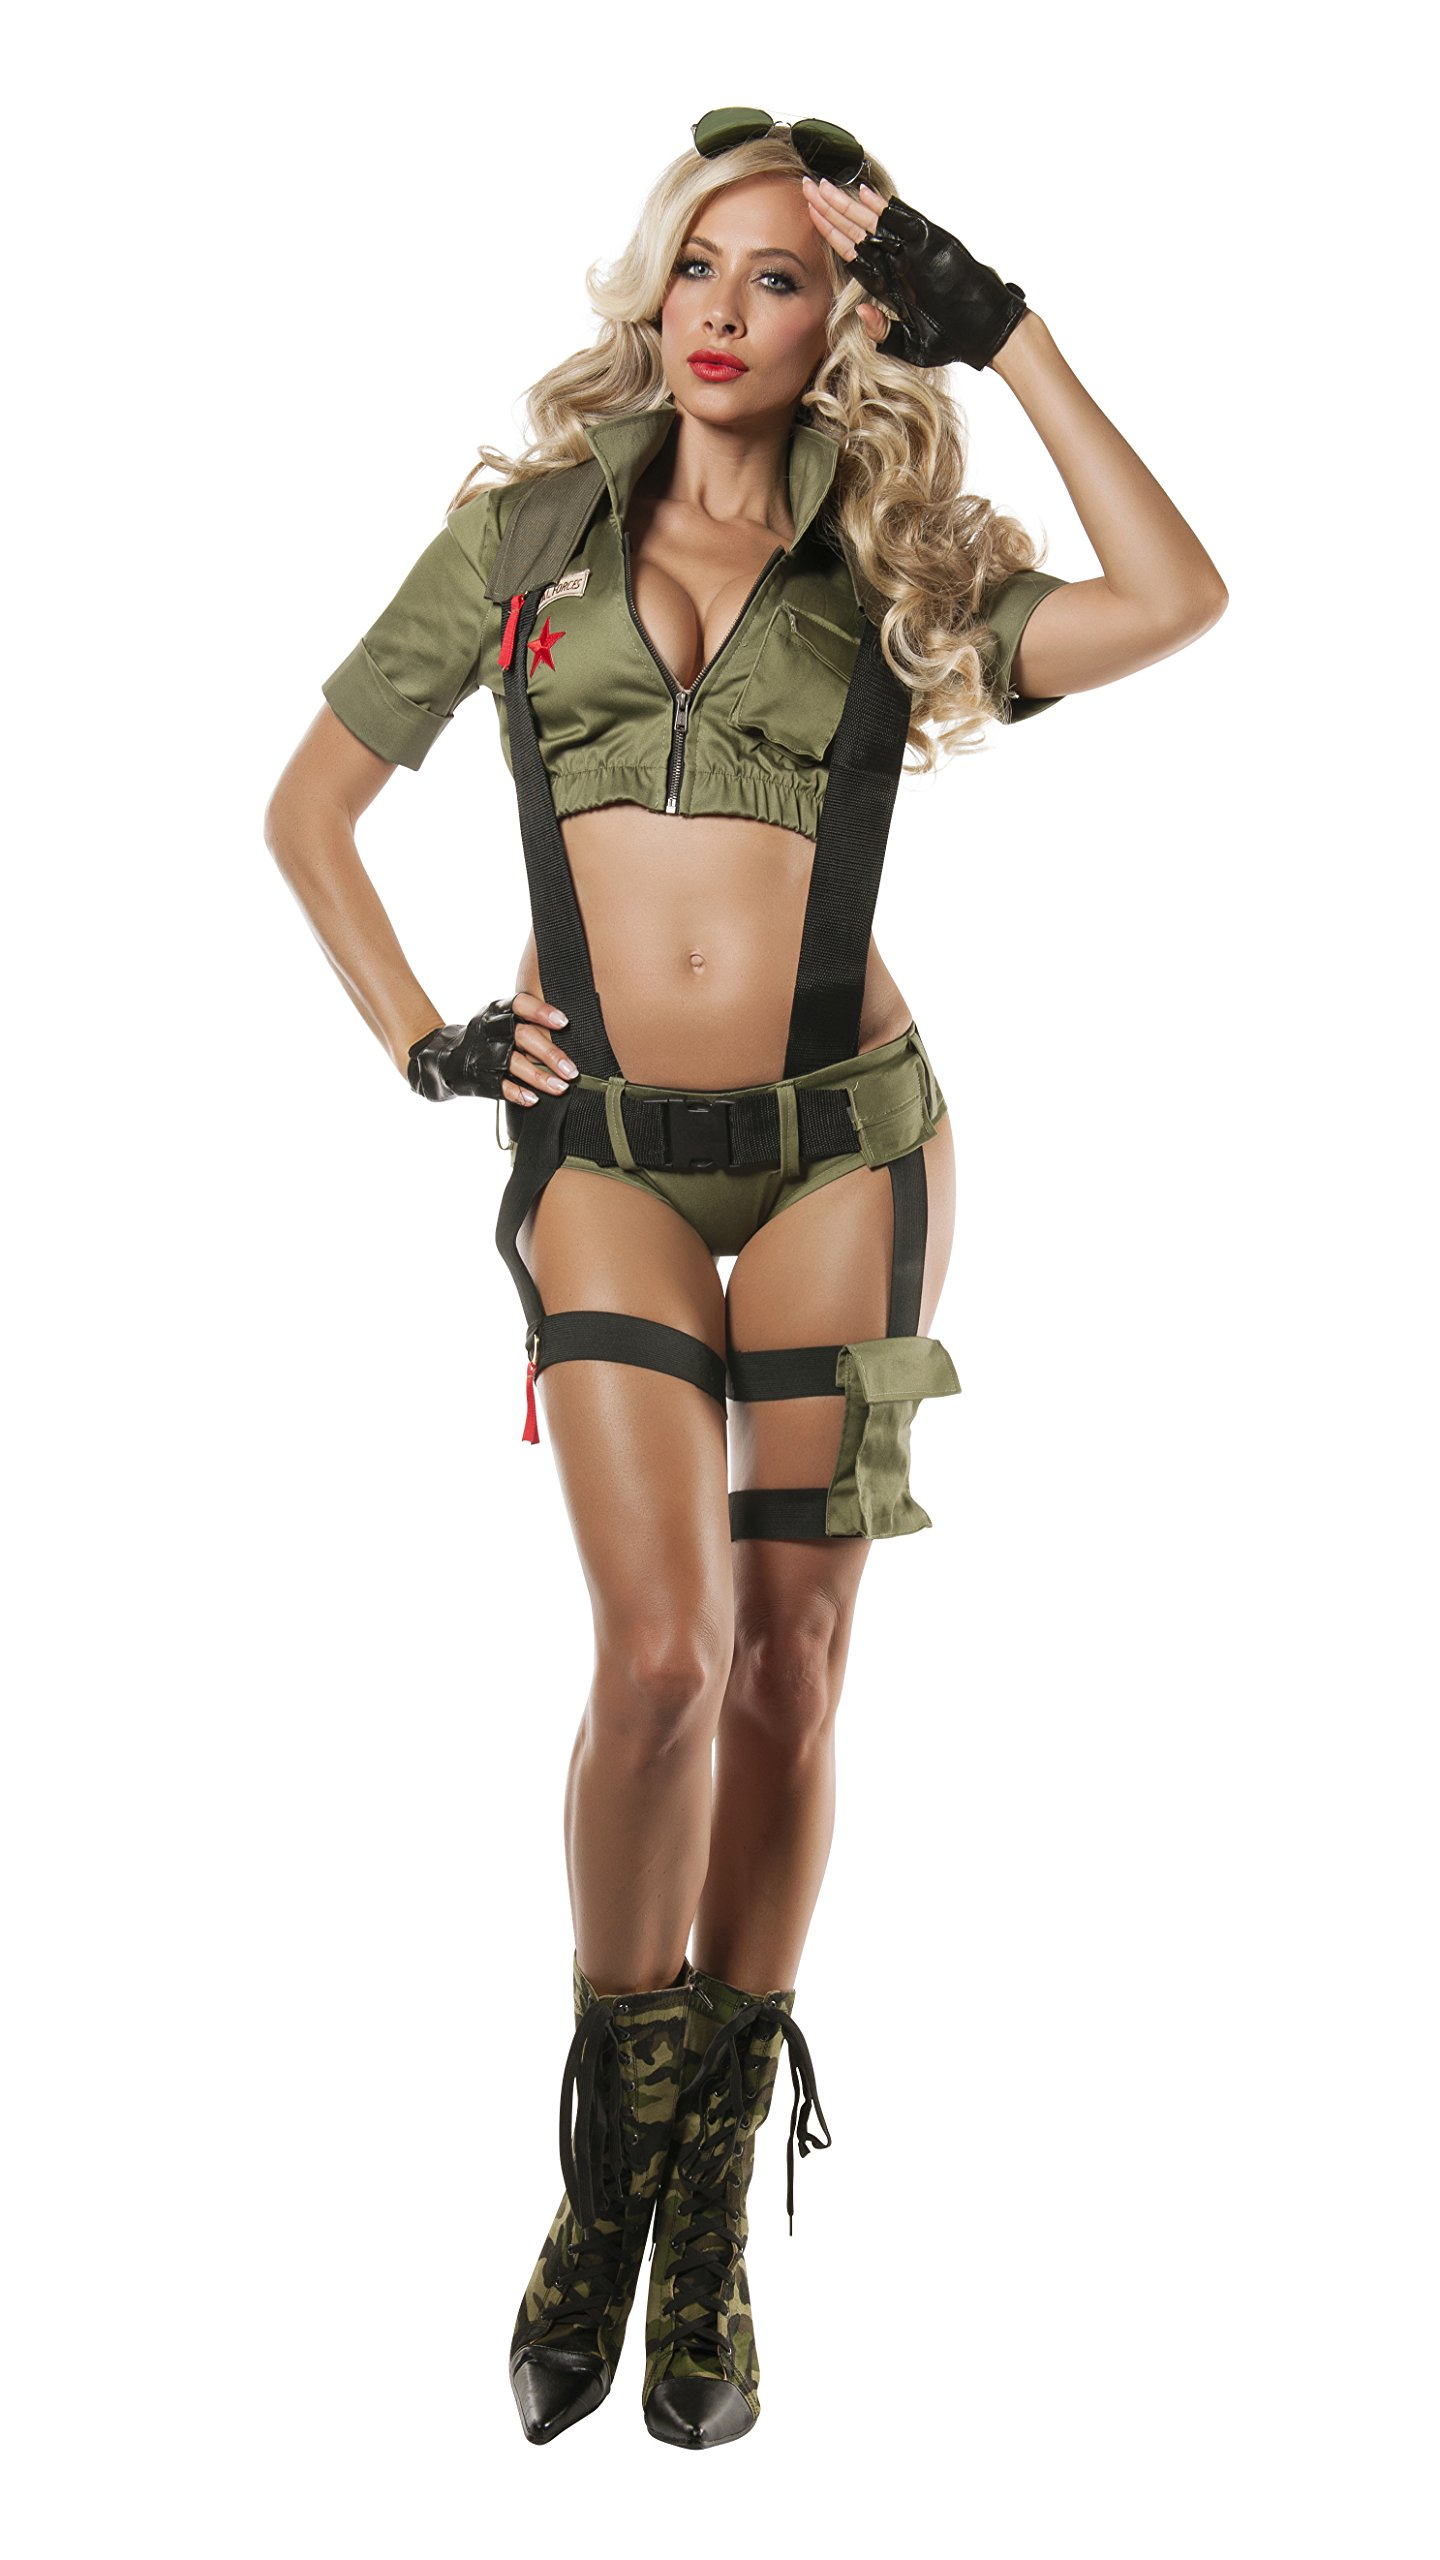 Military Costume Porn - Army Outfit Sexy   Free Anal Porn